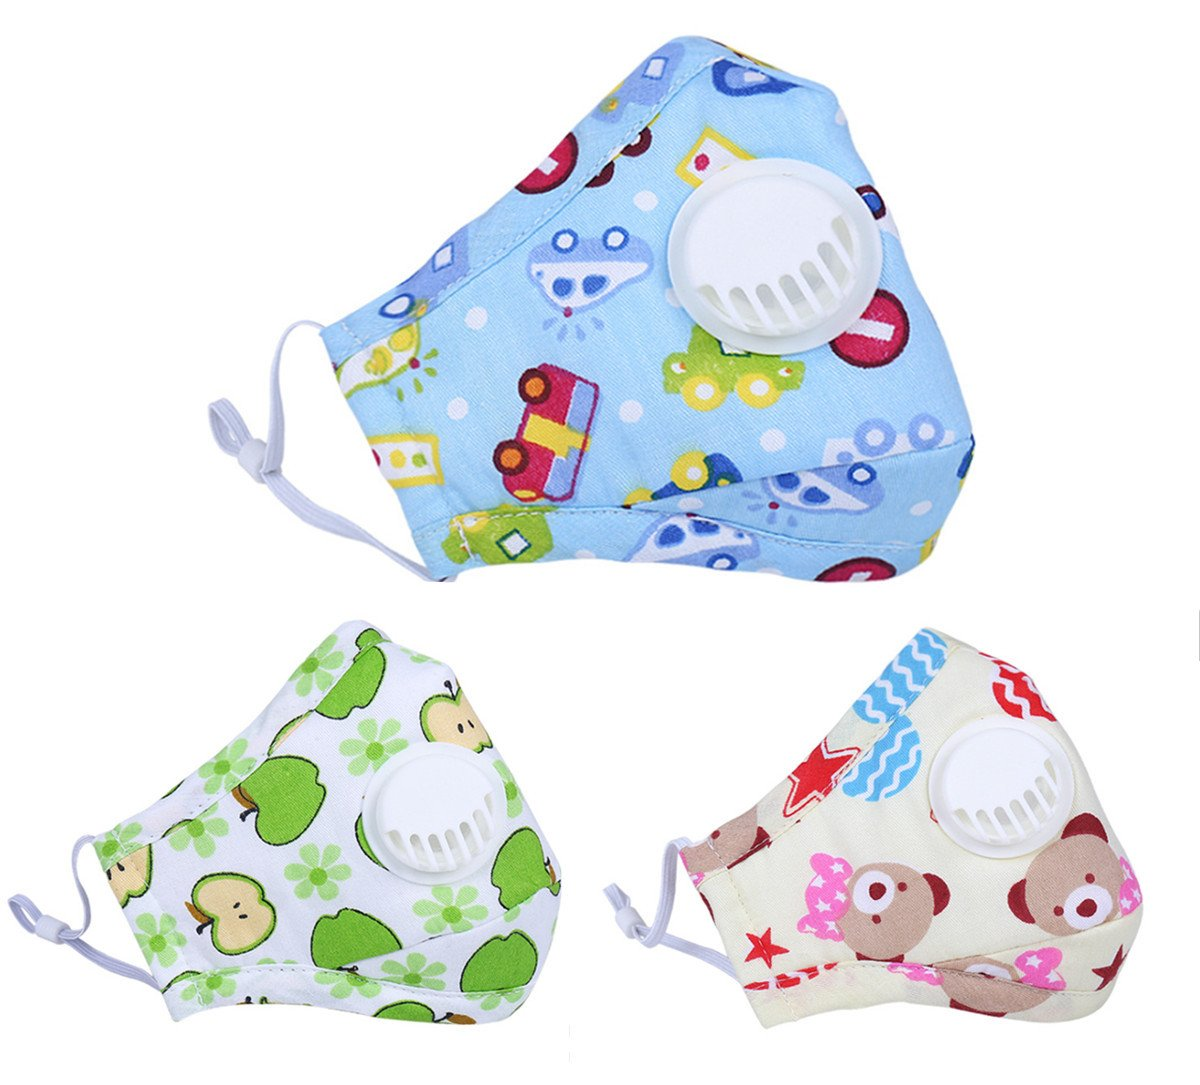 Santwo PM2.5 Breathing Valved Face Mask Cotton Anti Haze Mouth-Muffle for Kids 3 Pack (A)